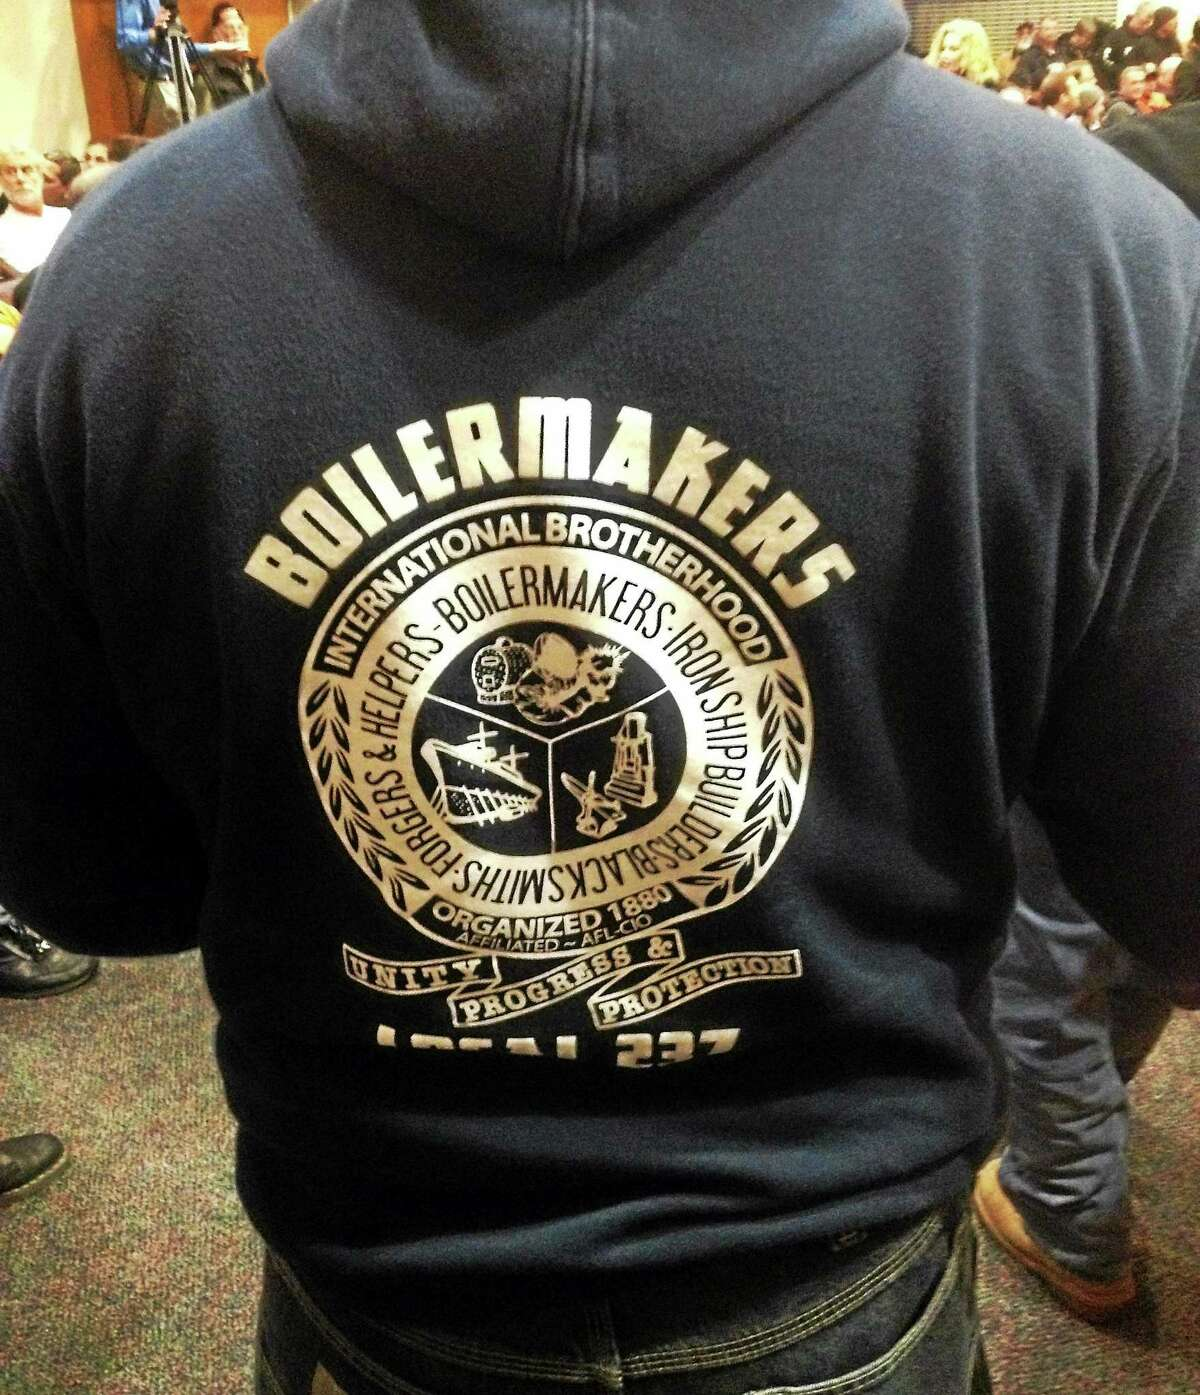 Members of the International Brotherhood of Boilermakers, Iron Ship Builders, Blacksmiths, Forgers and Helpers labor union attended Tuesday night's hearing.